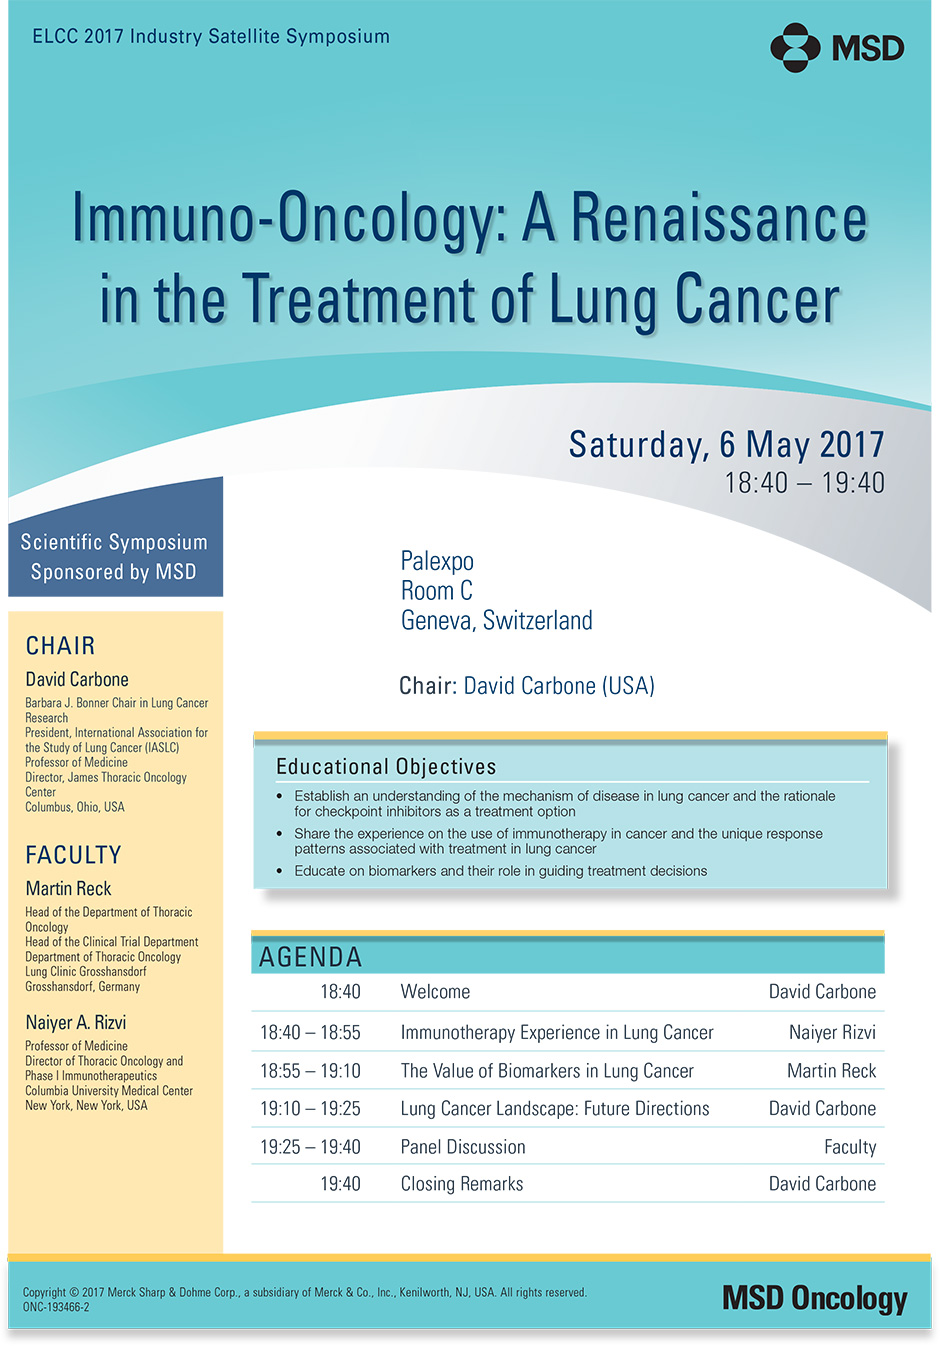 Immuno-Oncology: Renaissance in the Treatment of Lung Cancer